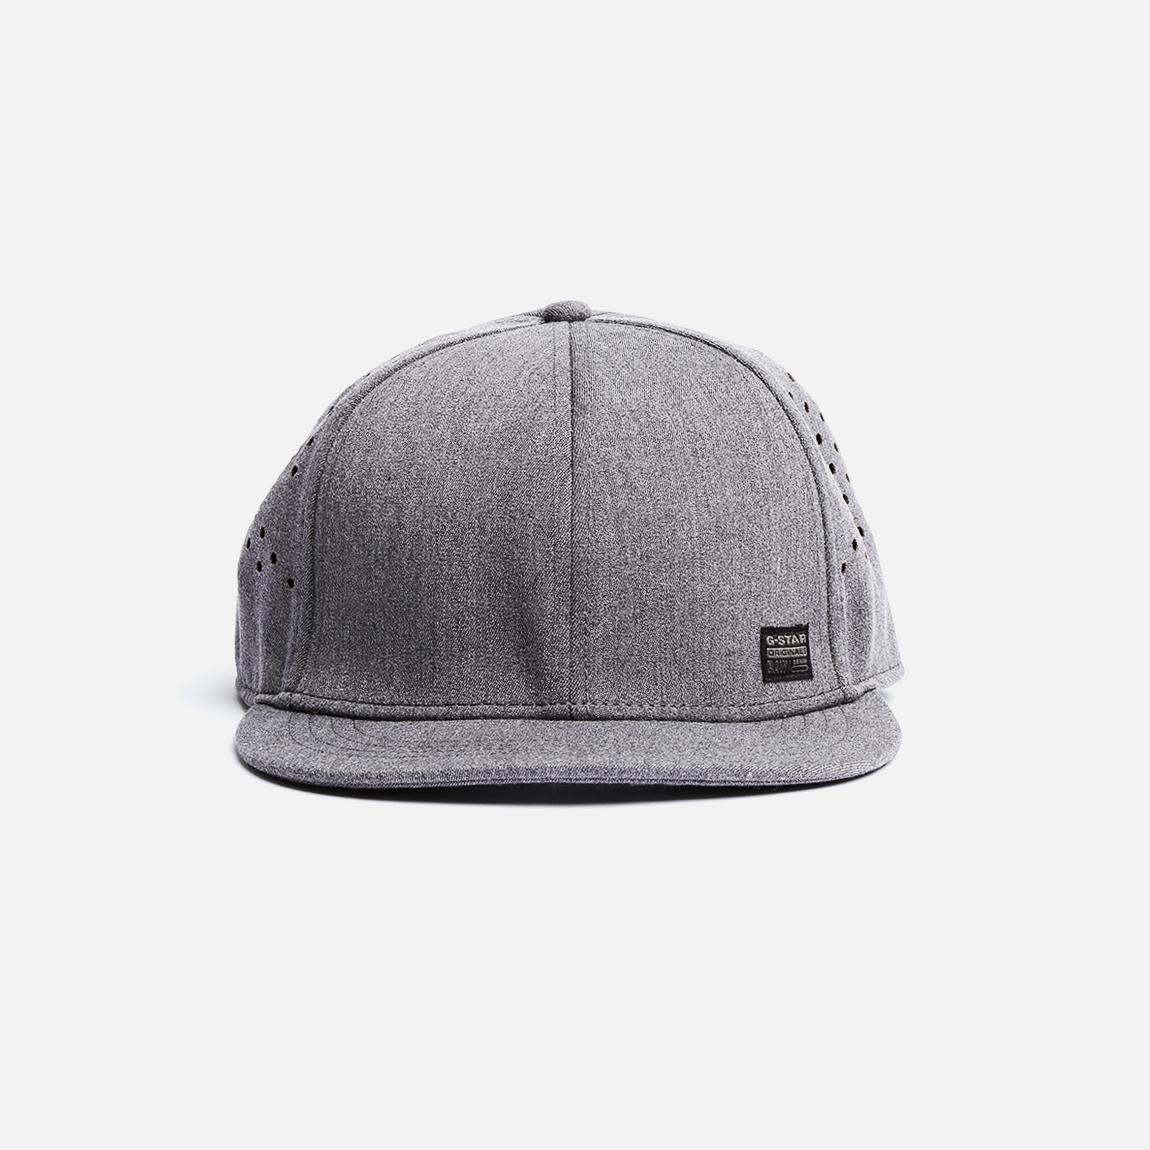 Blaker Snapback - Grey Grain G-Star RAW Headwear  f06373289c4